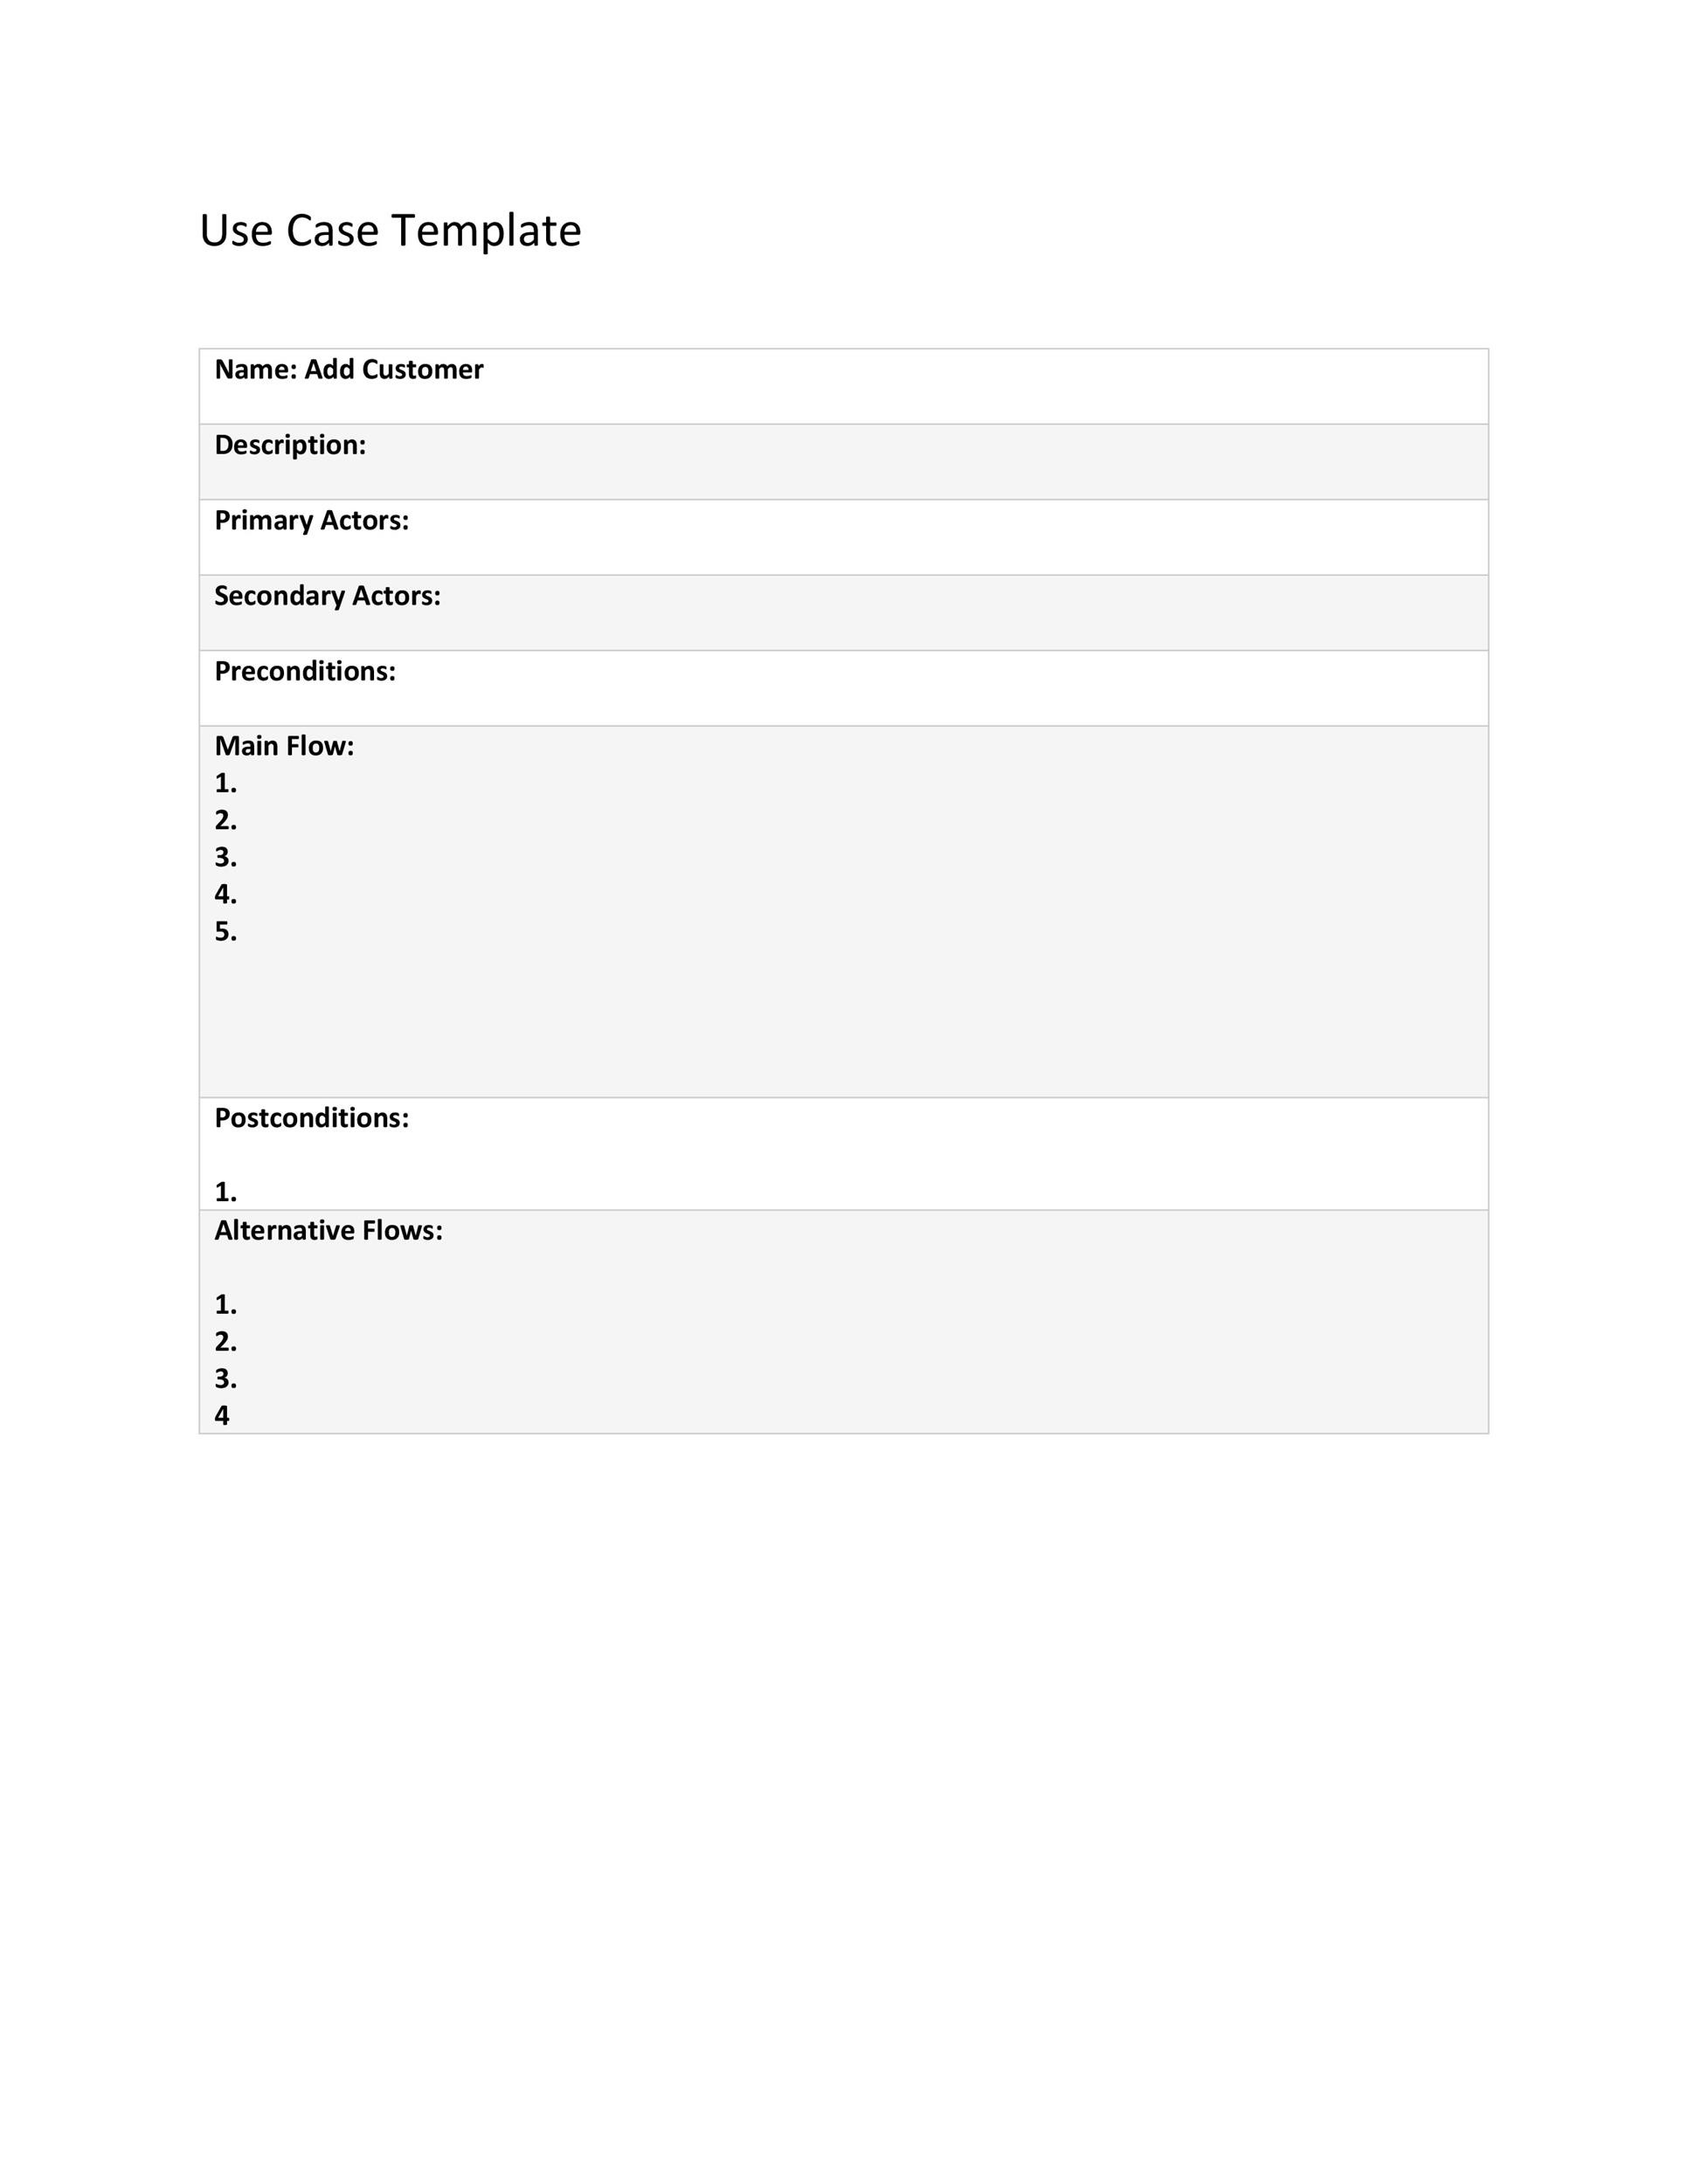 Free Use Case Template 27